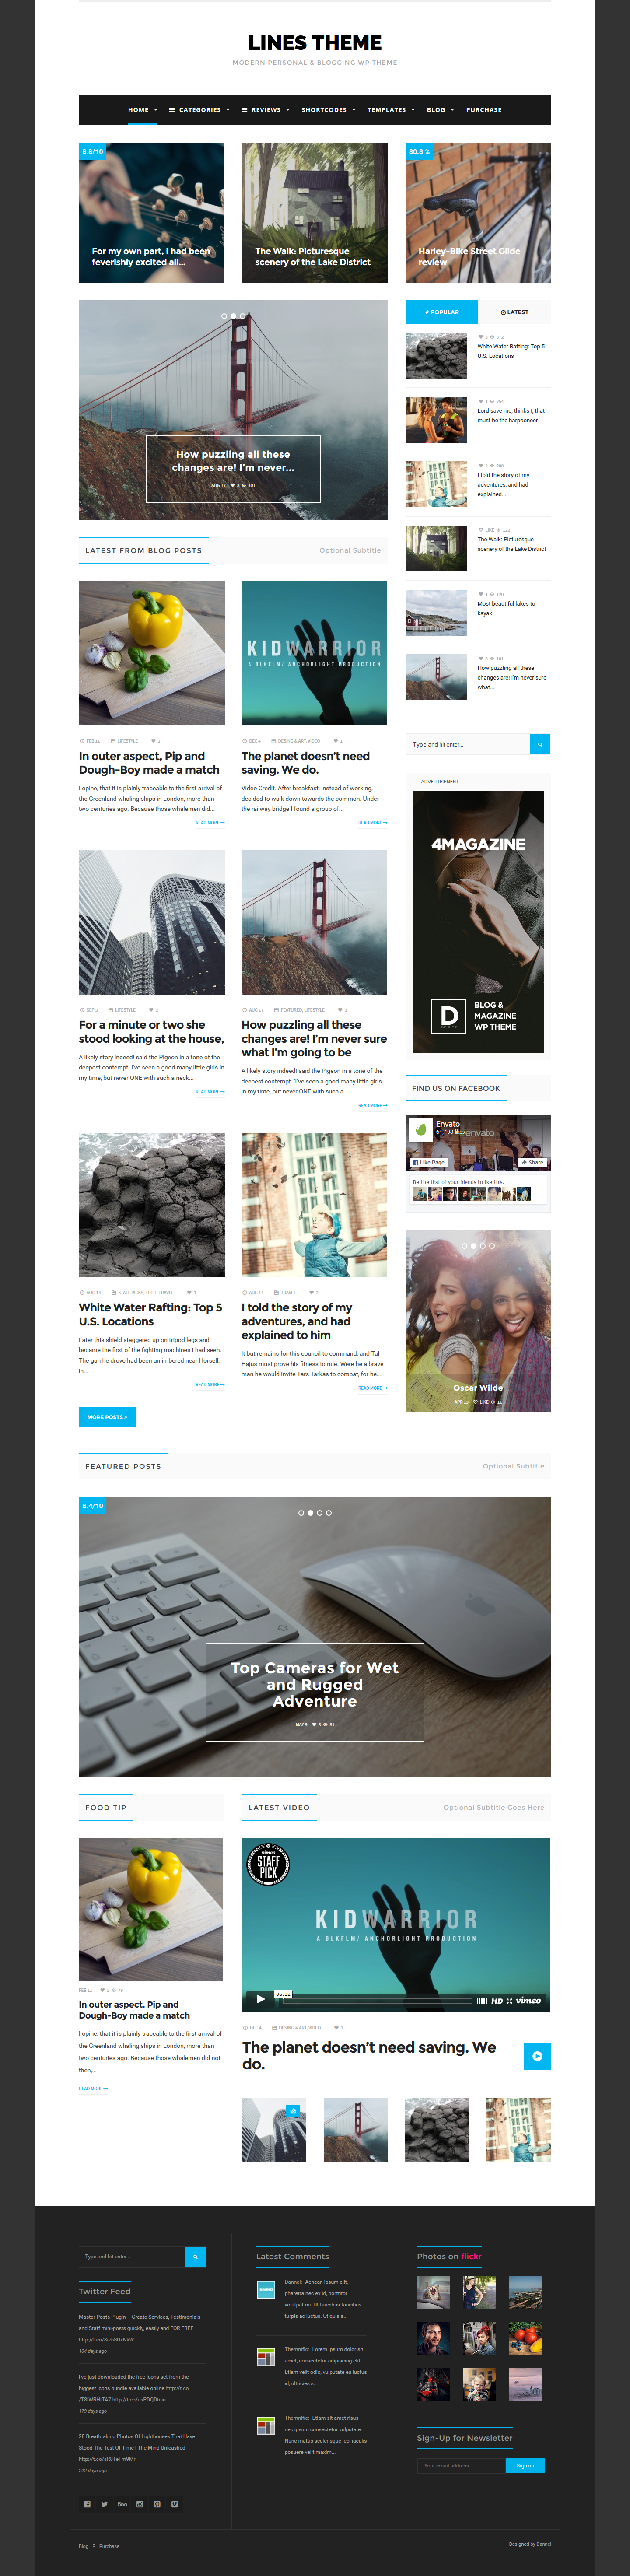 Lines - Elegant Personal / News WordPress Theme by Dannci | ThemeForest